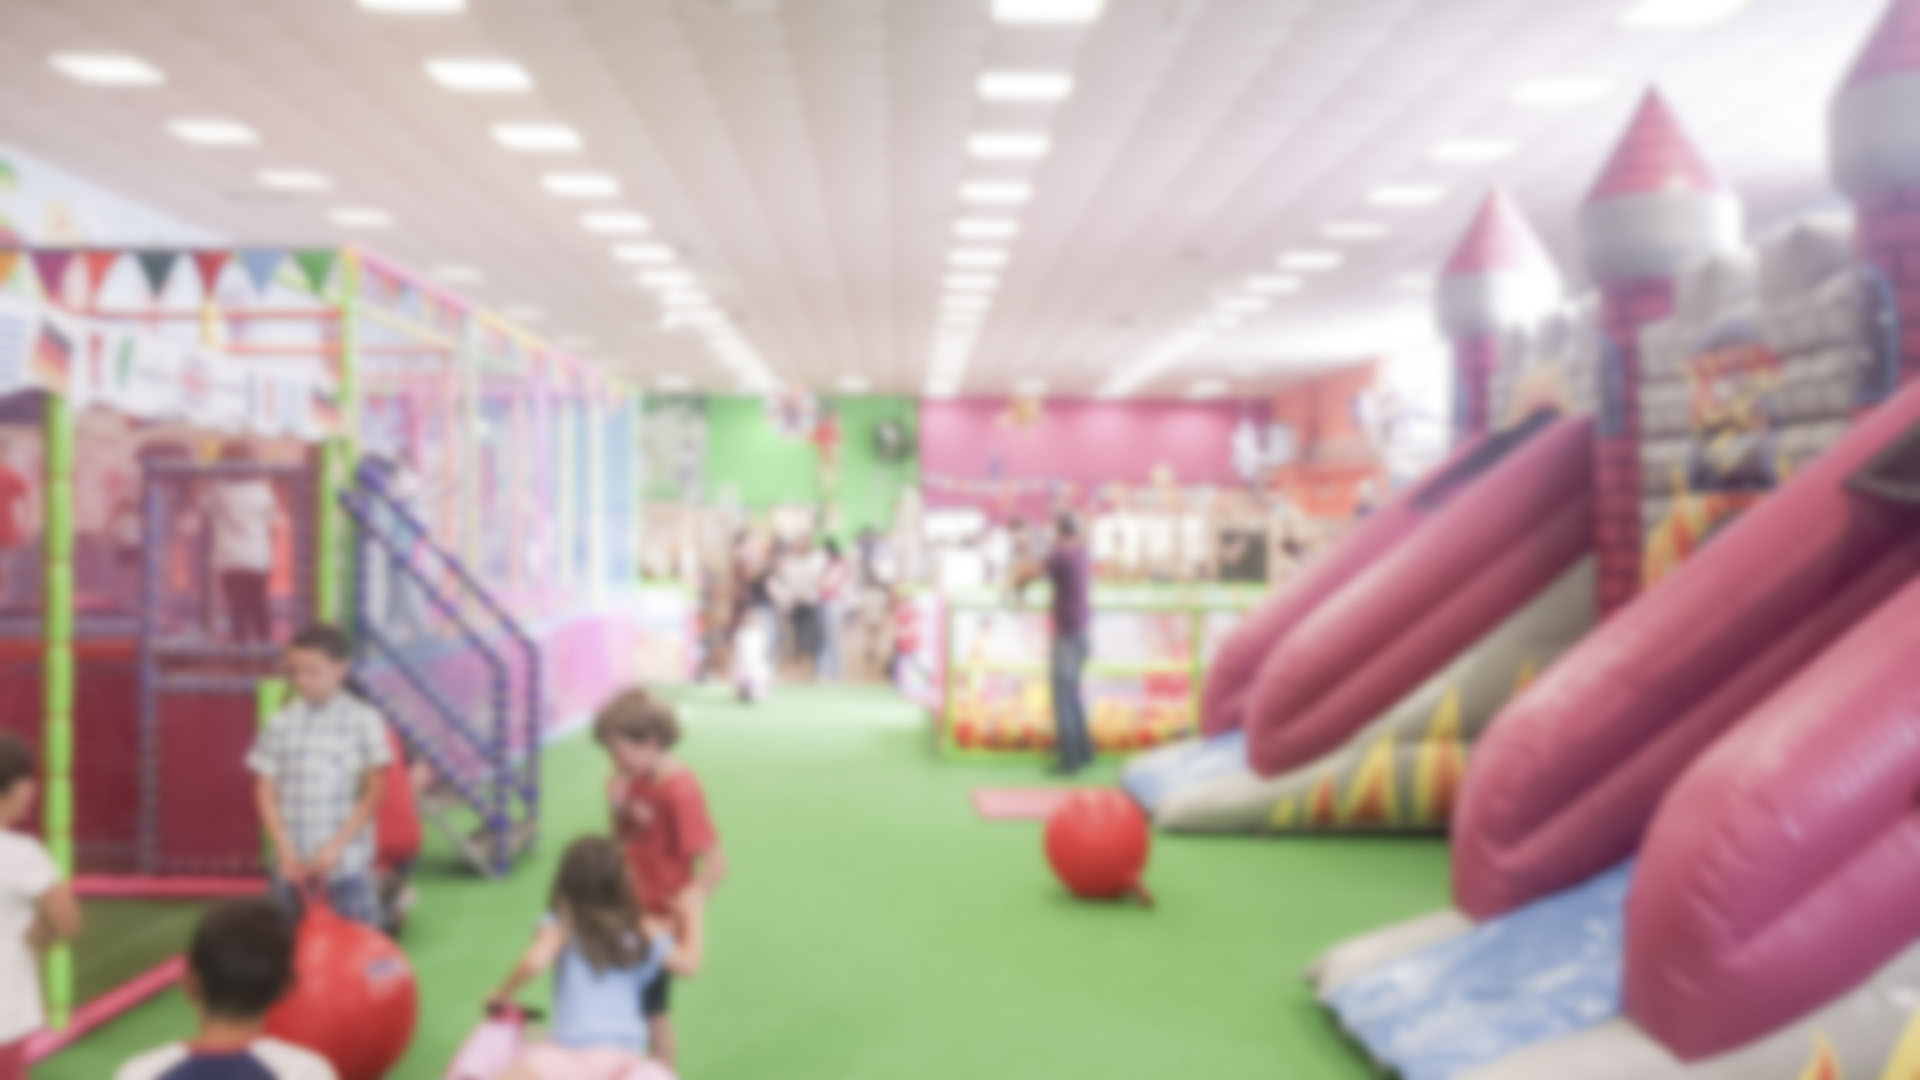 Defocused background of indoor children's public playground